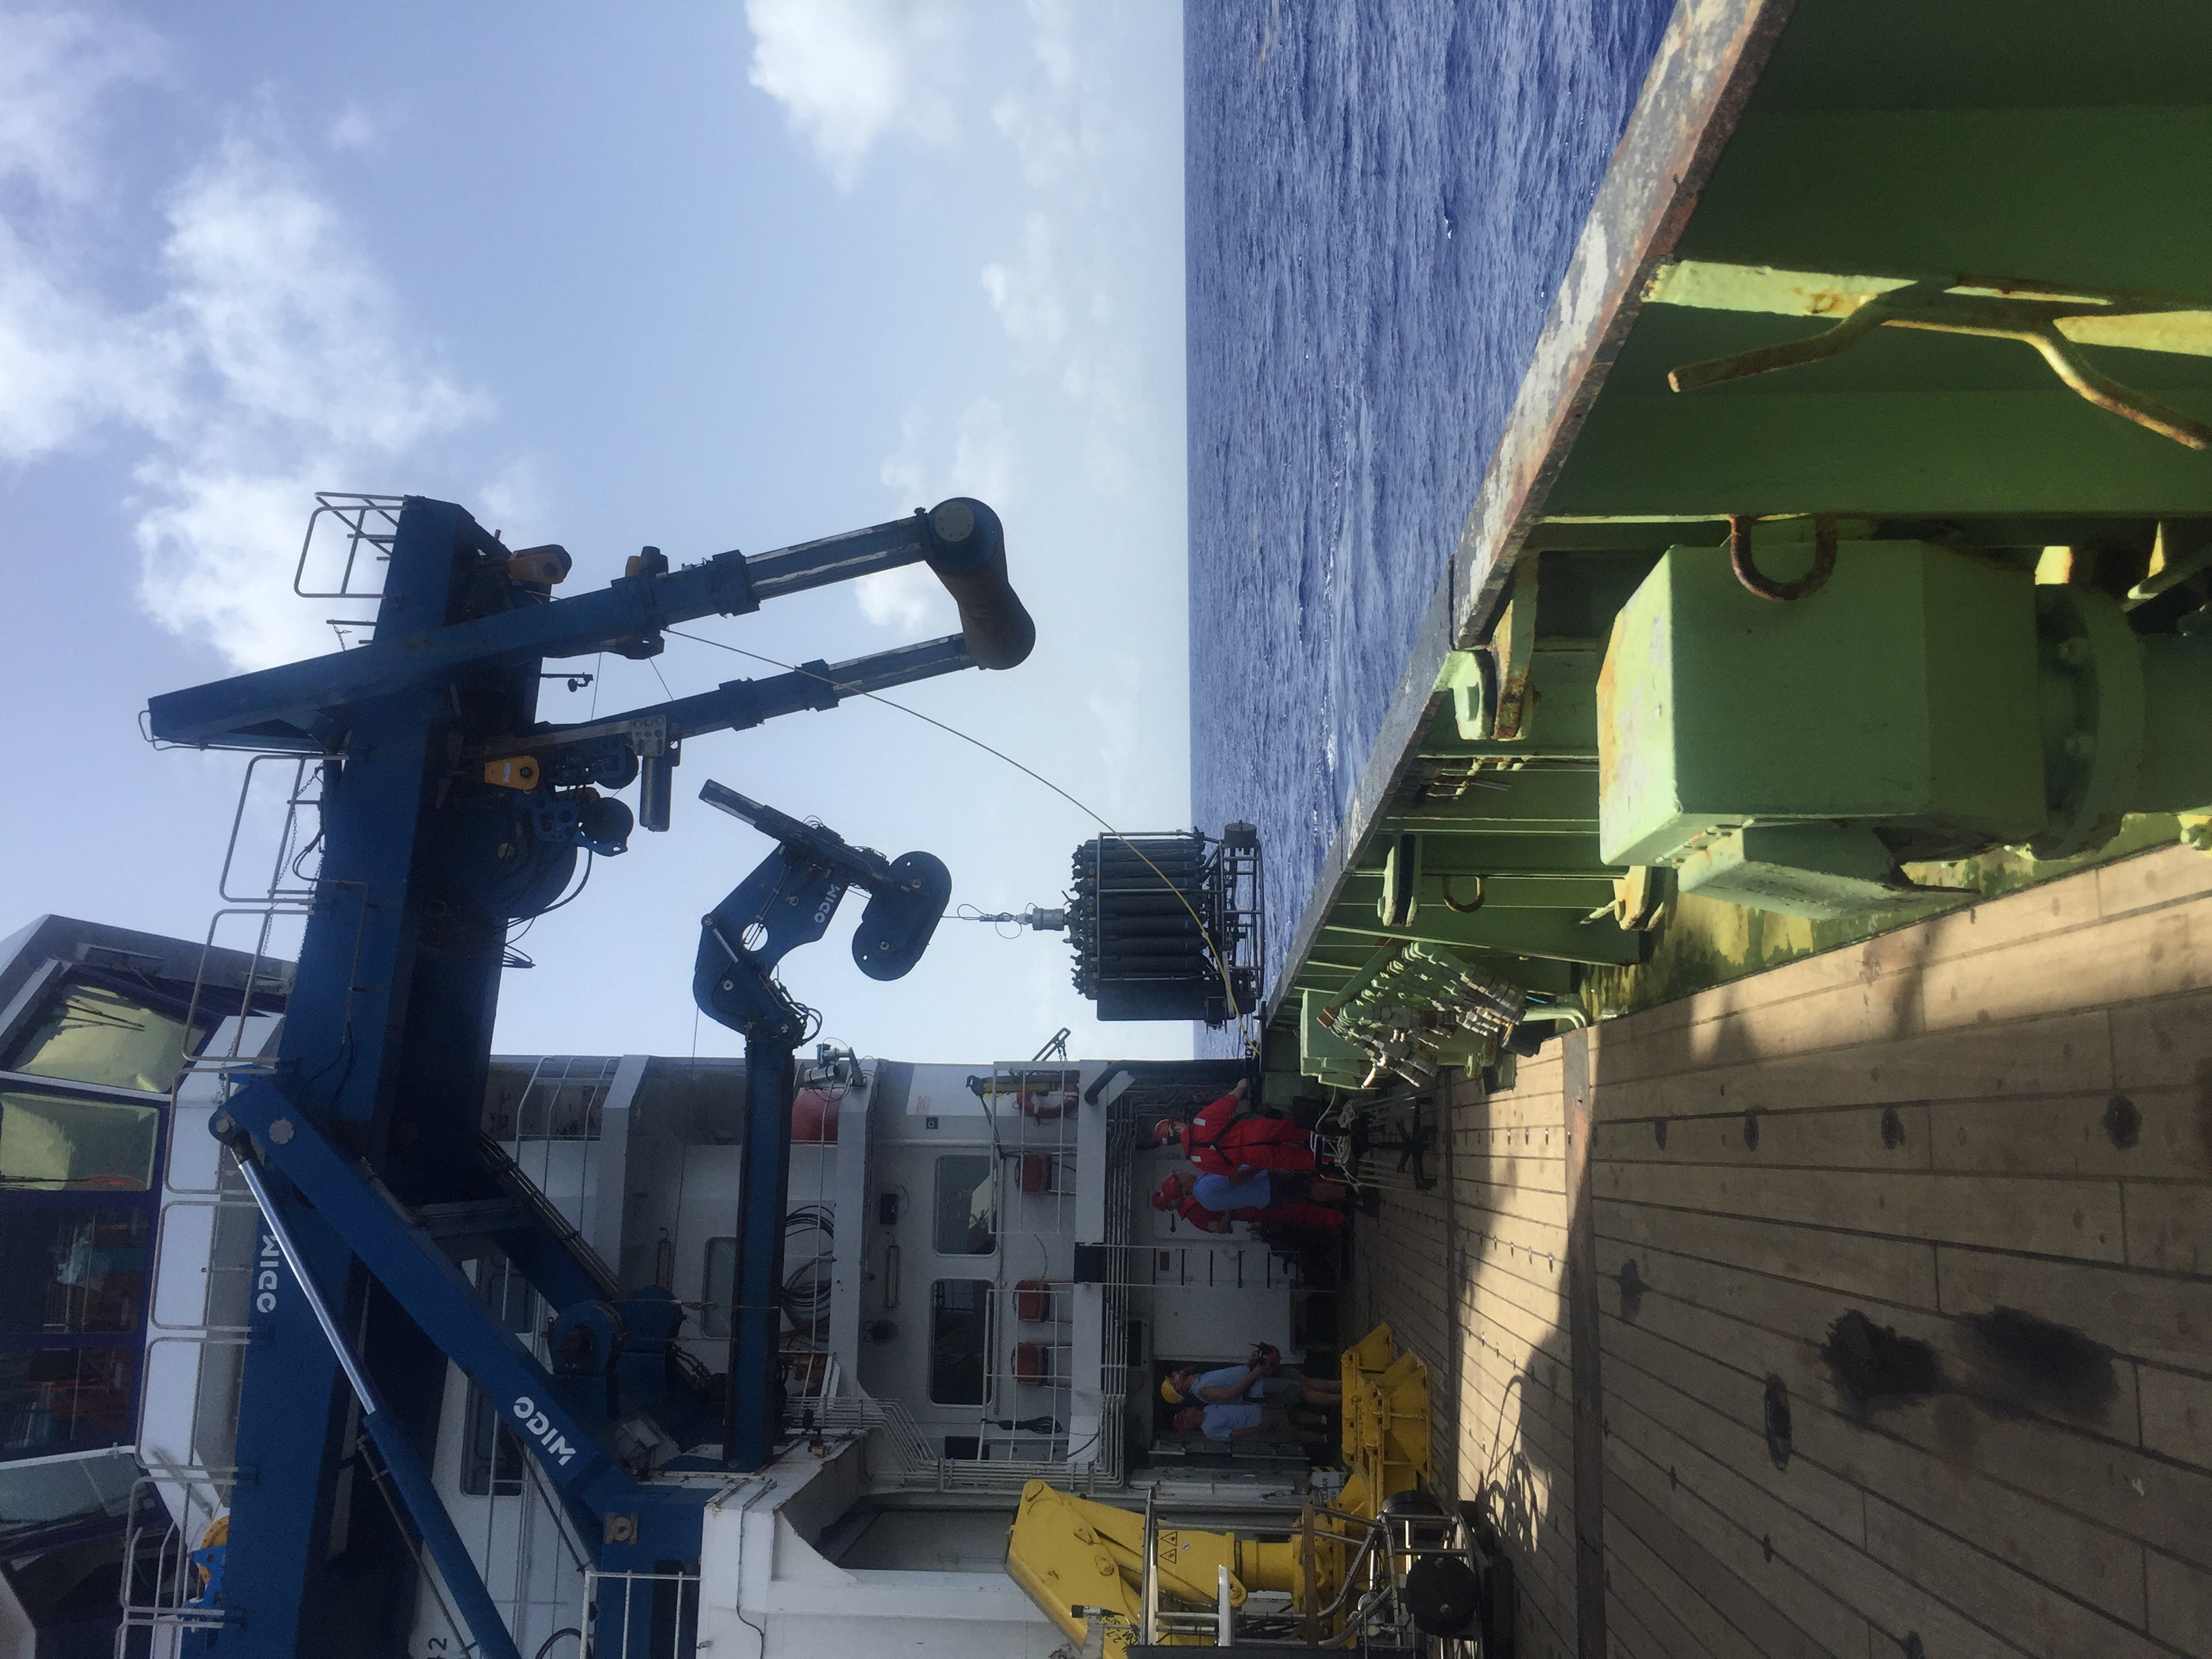 Deck of the RRS James Cook in the subtropical North Atlantic (July 2017) Credit: Claire Mahaffey